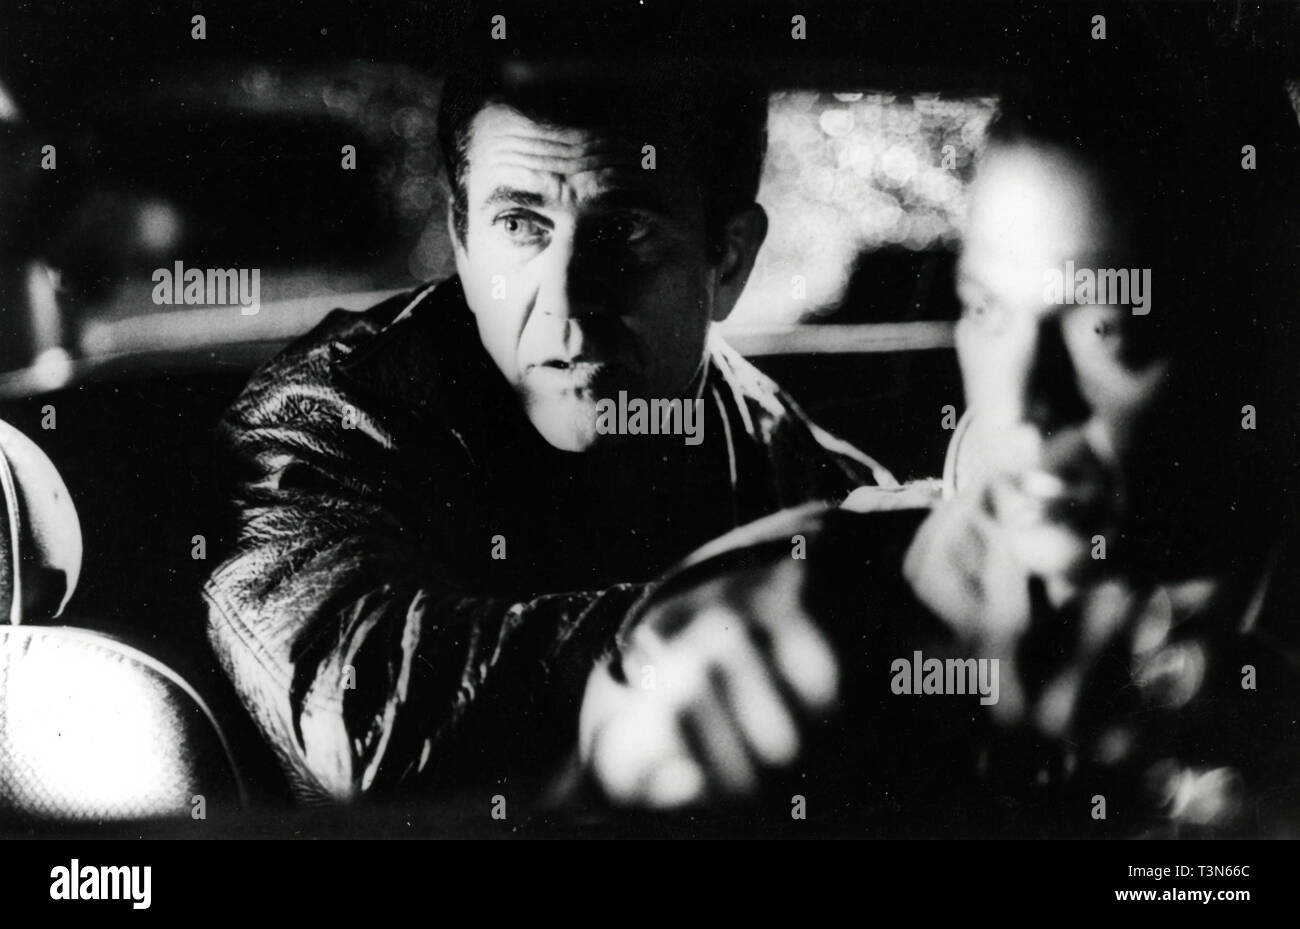 Actor Mel Gibson in the movie Conspiracy Theory, 1997 - Stock Image